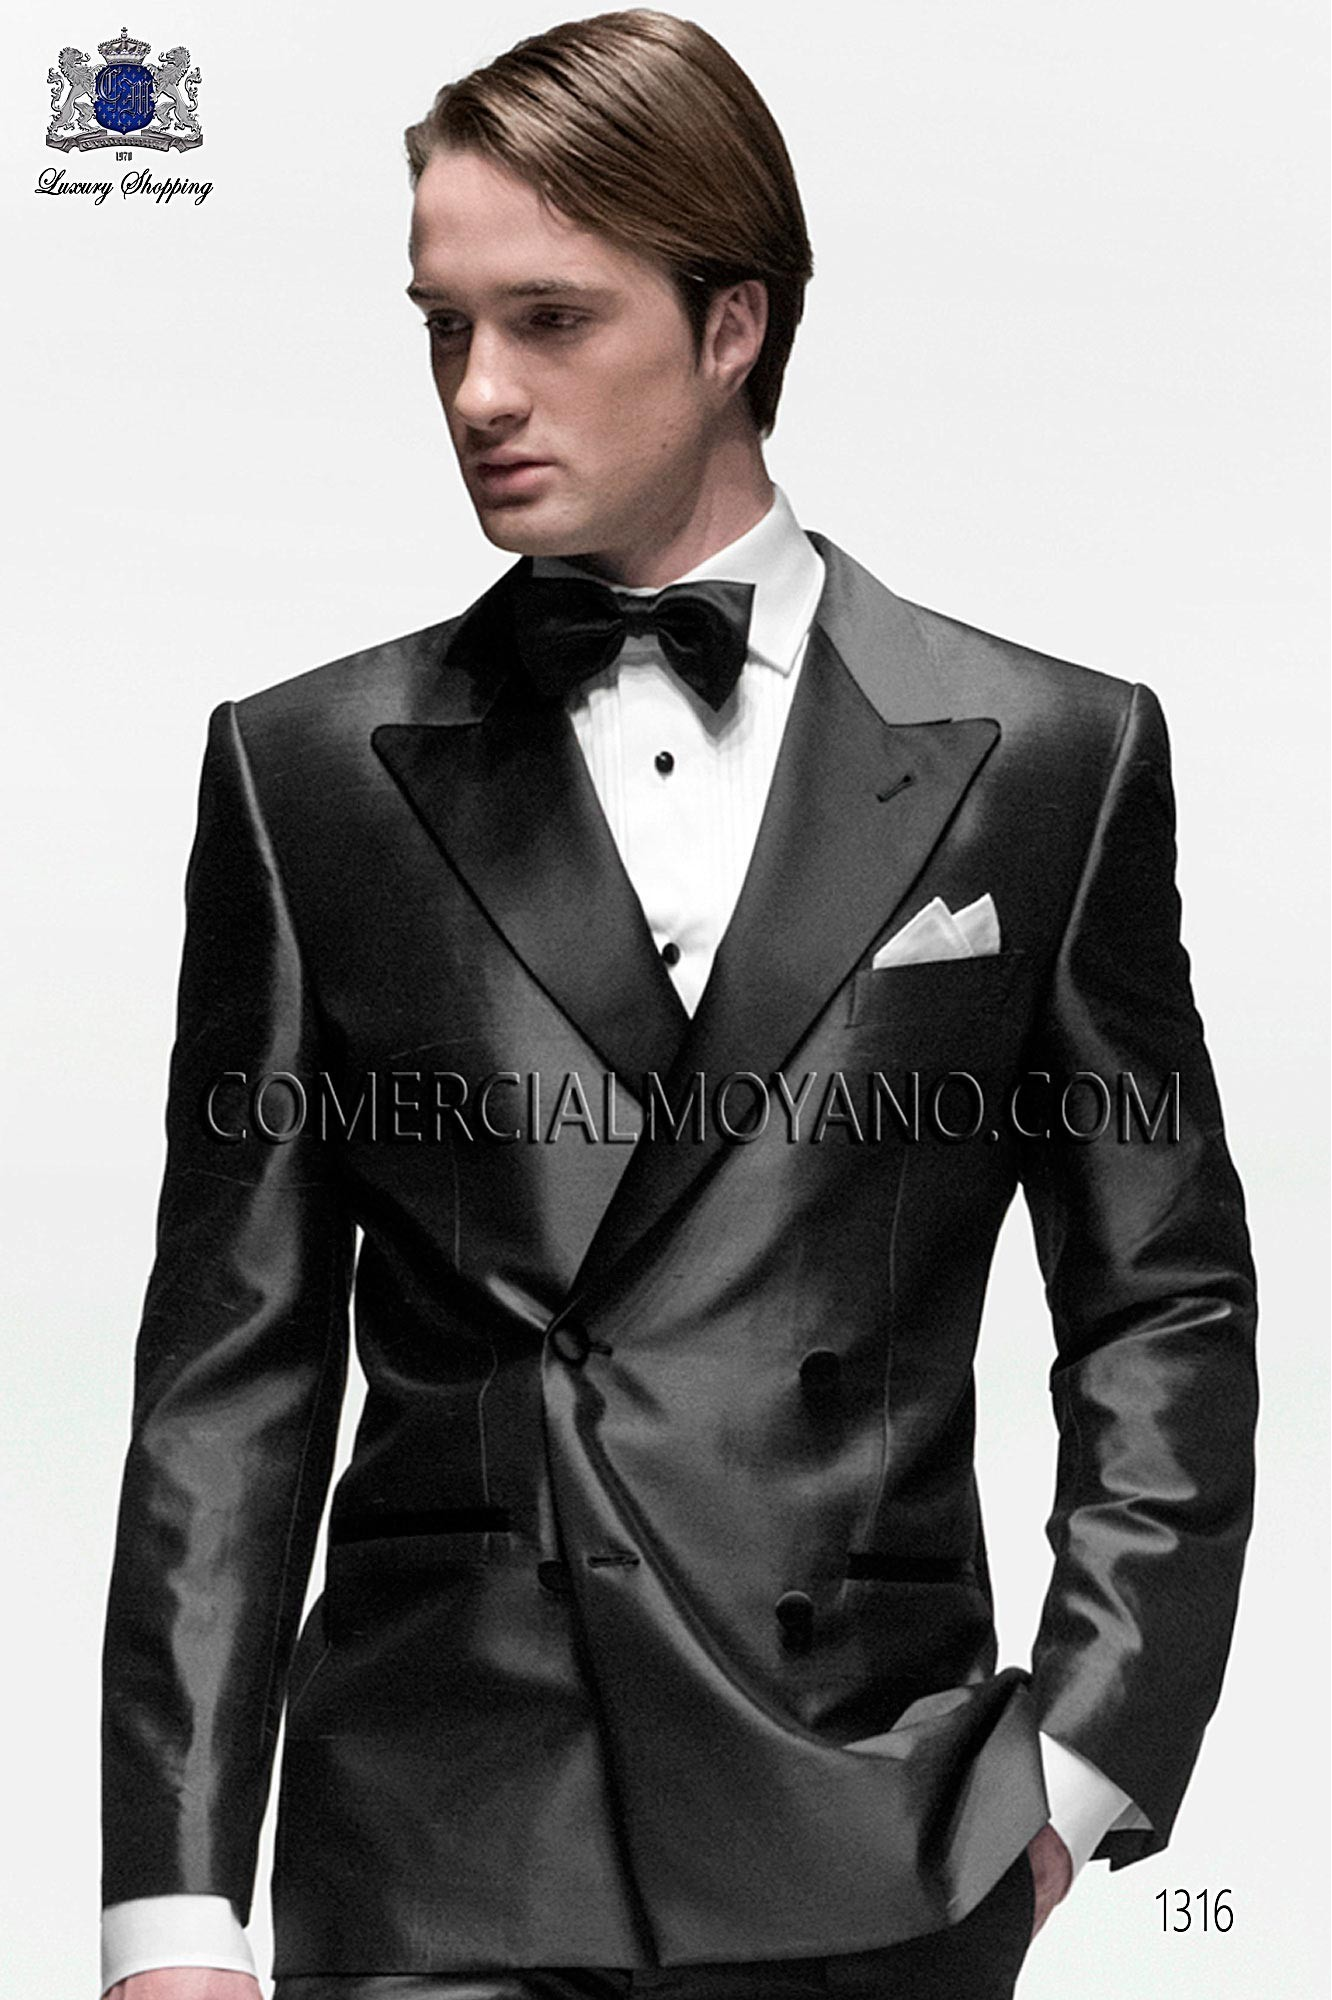 Black Tie Gray men wedding suit, model: 1316 Ottavio Nuccio Gala ...